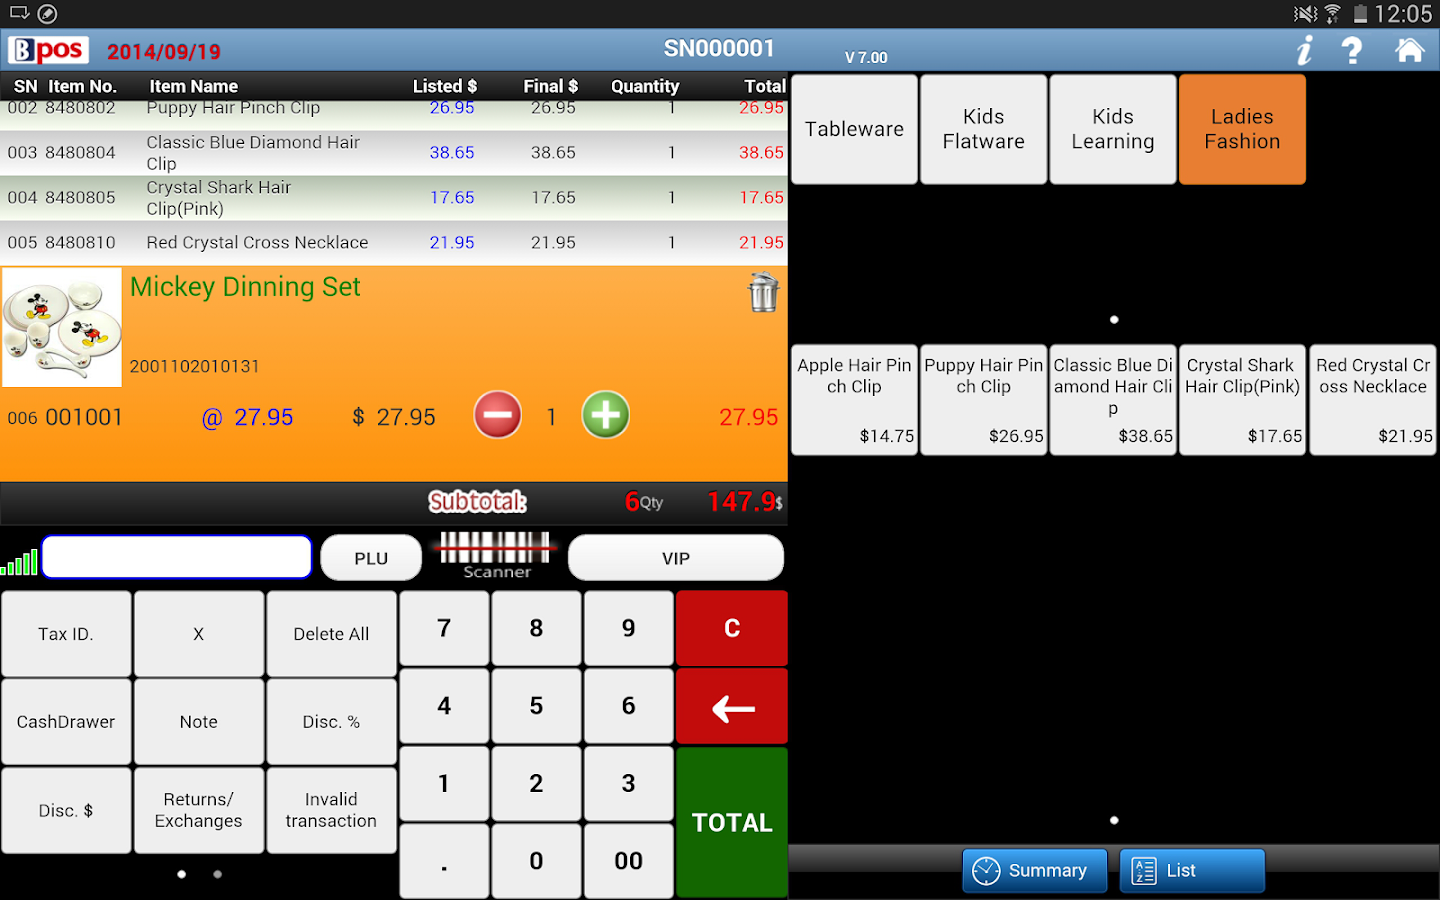 BPOS cloud pos system - screenshot